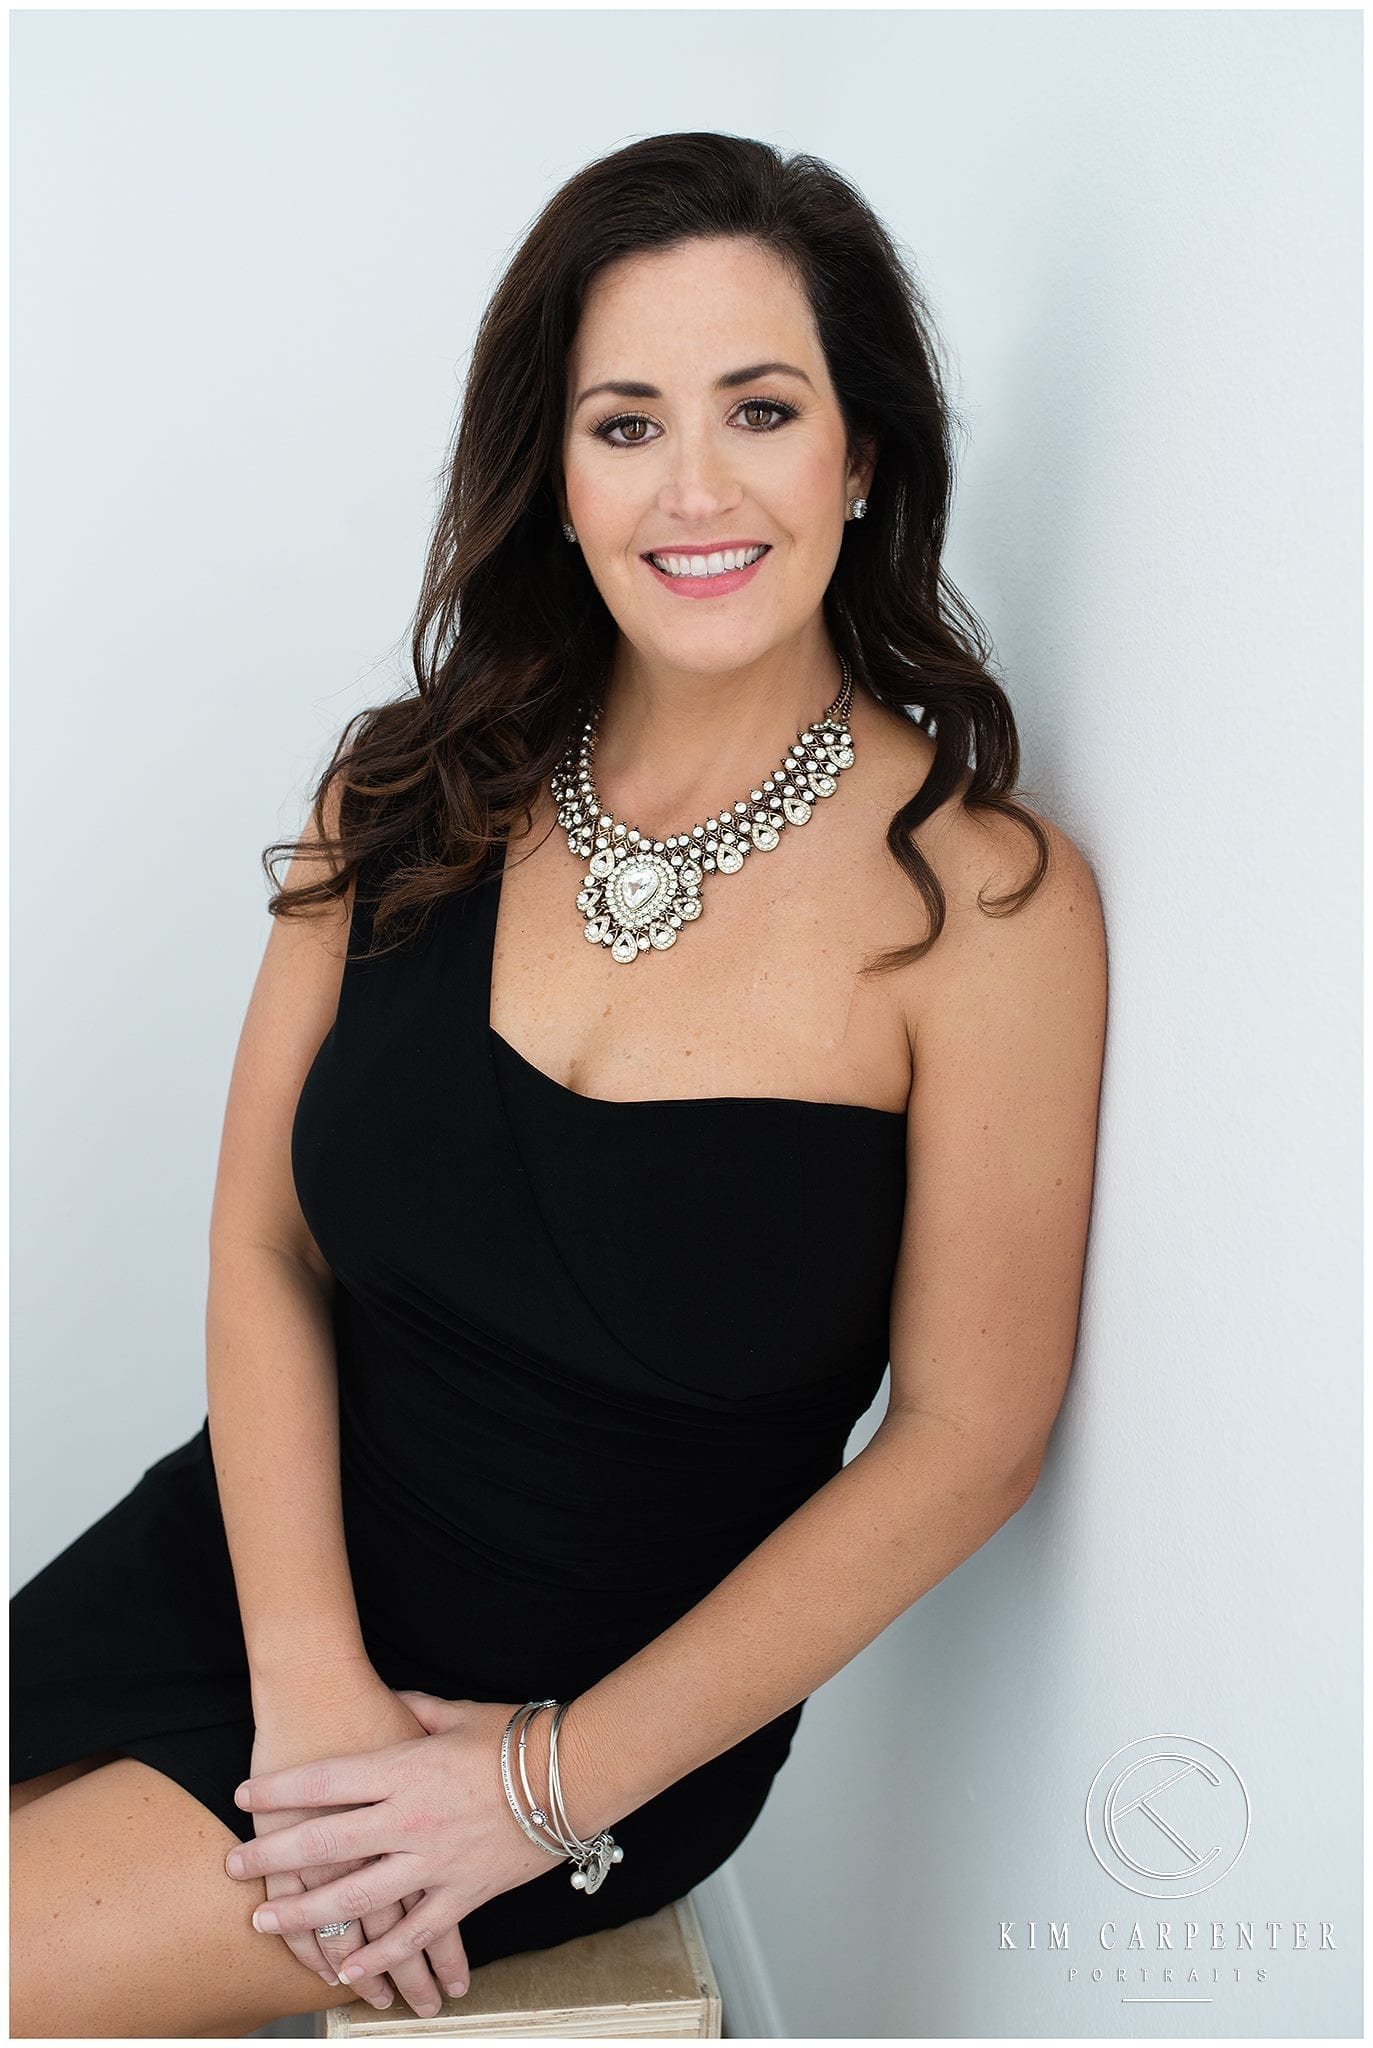 Beautiful woman wearing a black dress and a blingy necklace smiling at a camera.